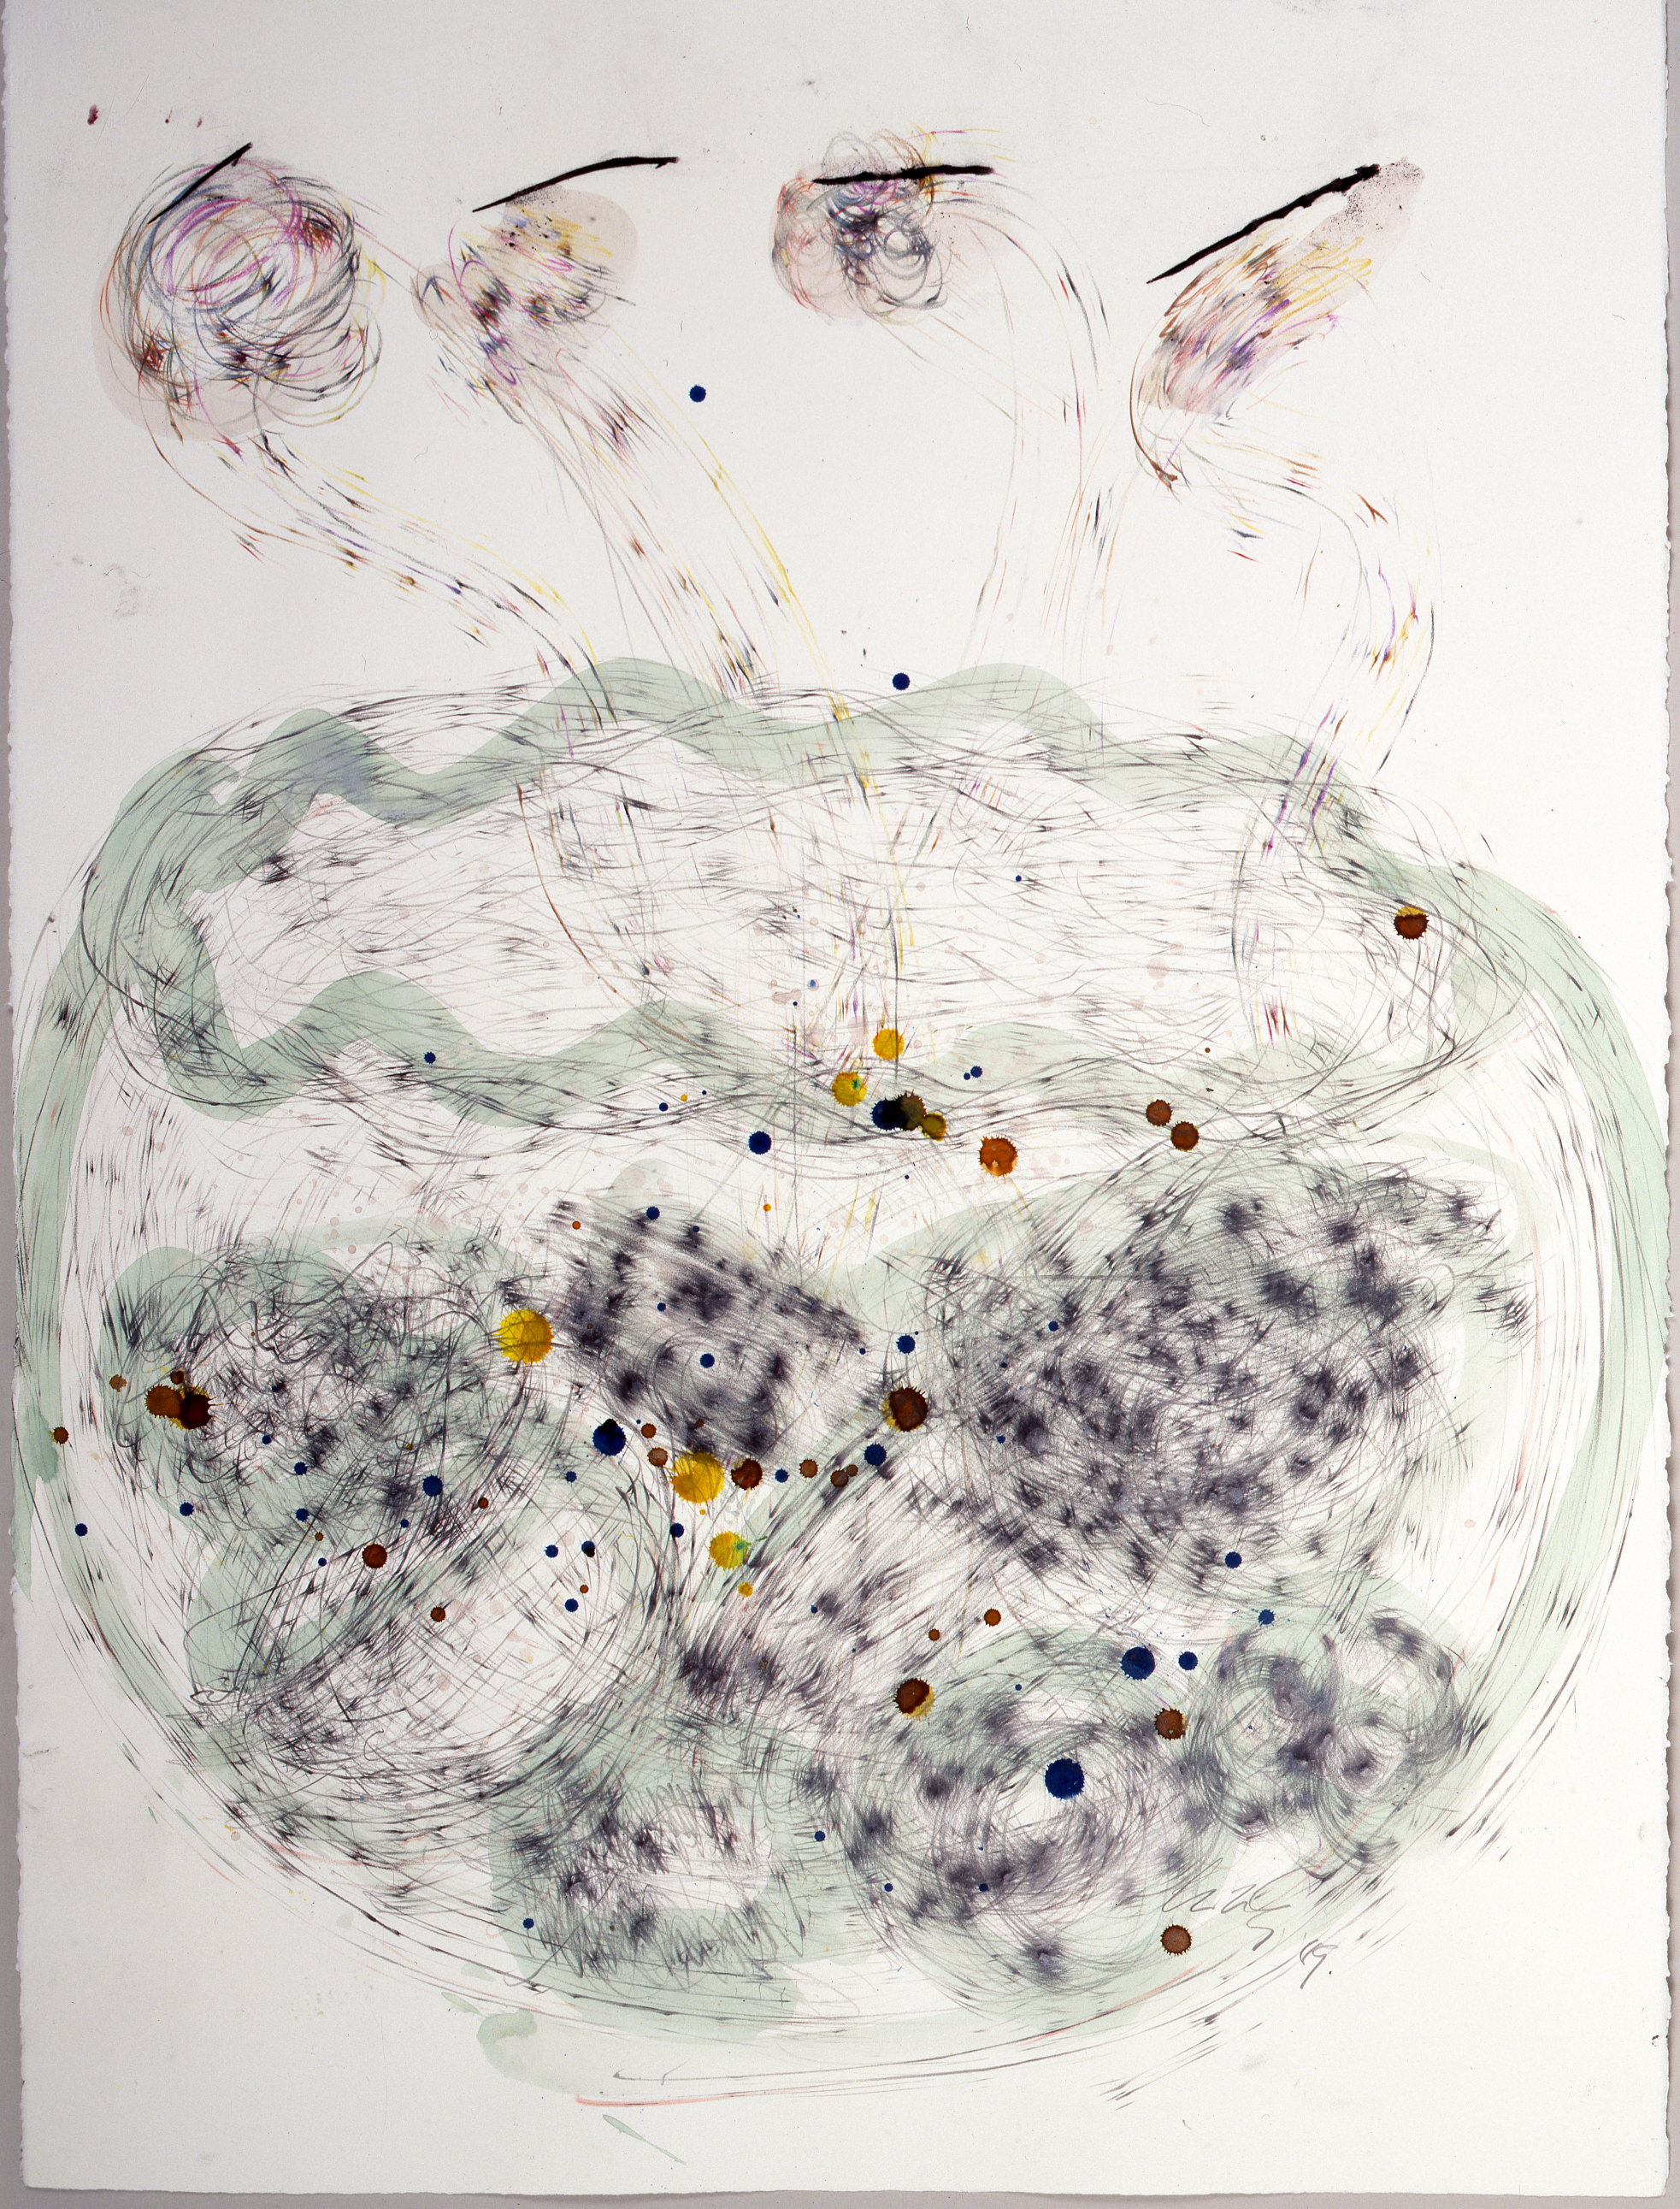 Dale Chihuly, Niijima Drawing, (watercolor, charcoal, colored pencil and graphite onpaper, 30 x 22 inches), DC.372